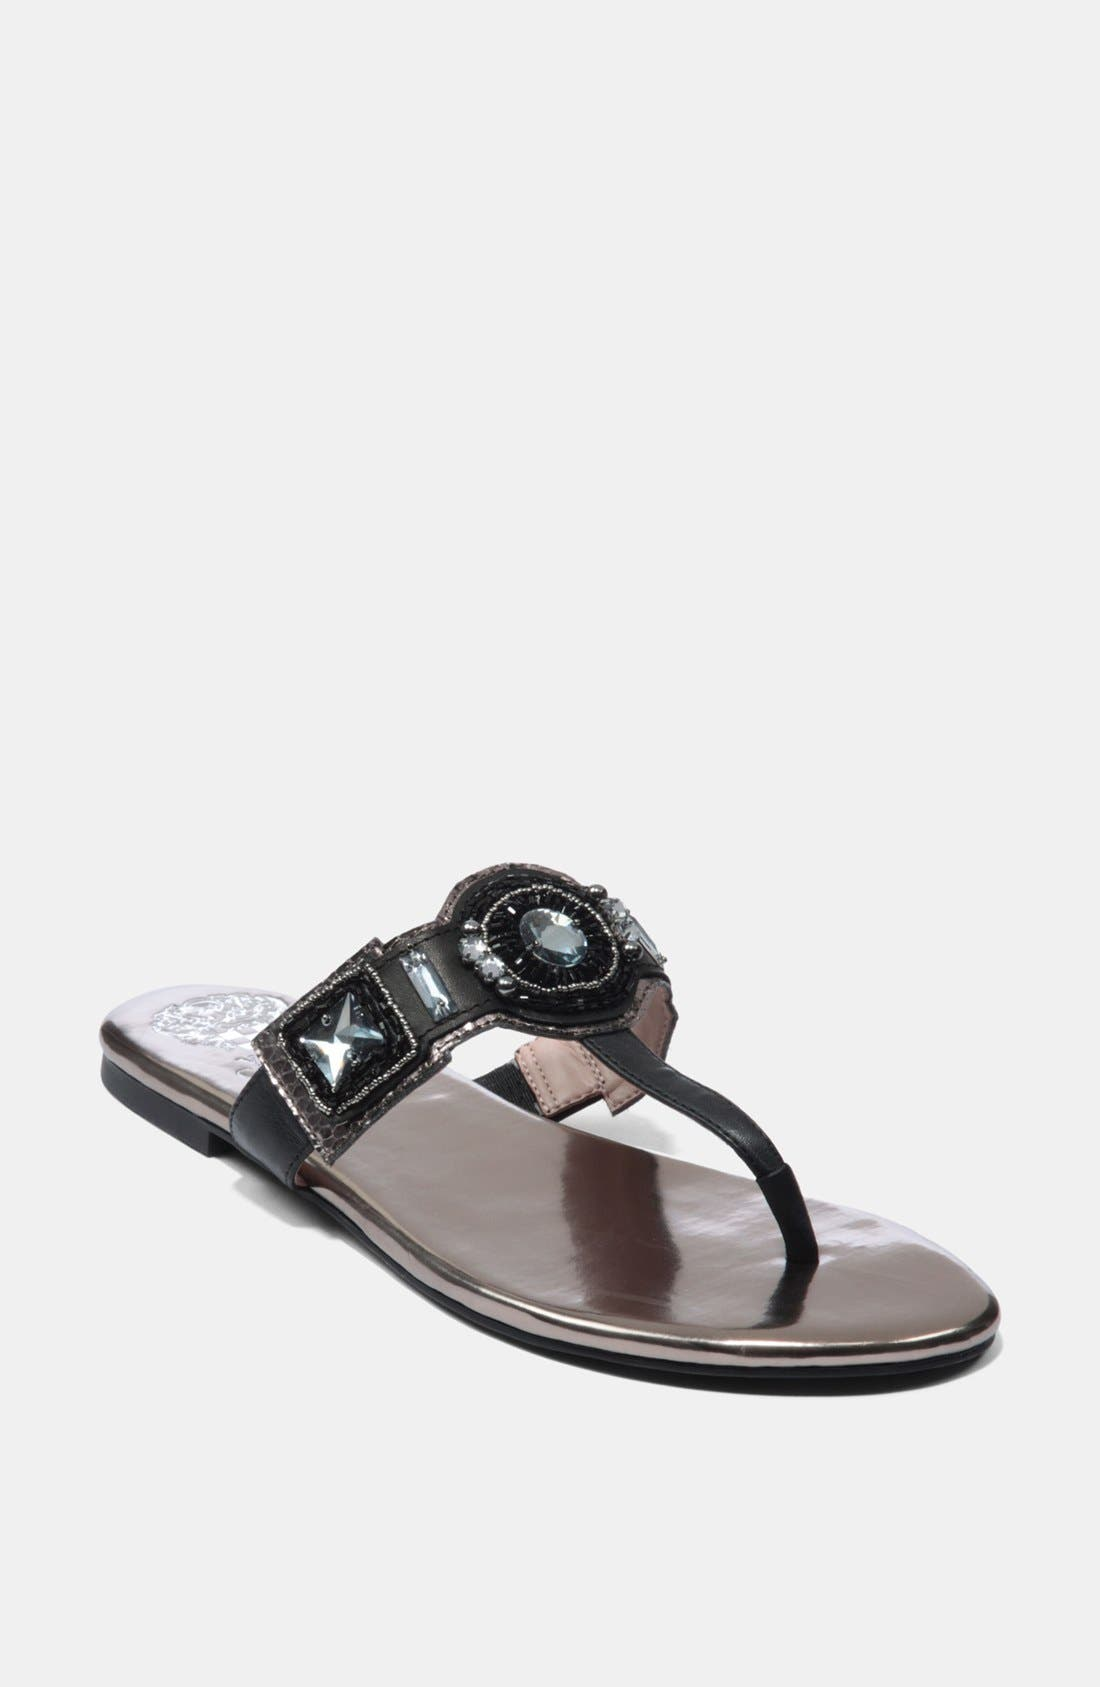 Alternate Image 1 Selected - Vince Camuto 'Madith' Sandal